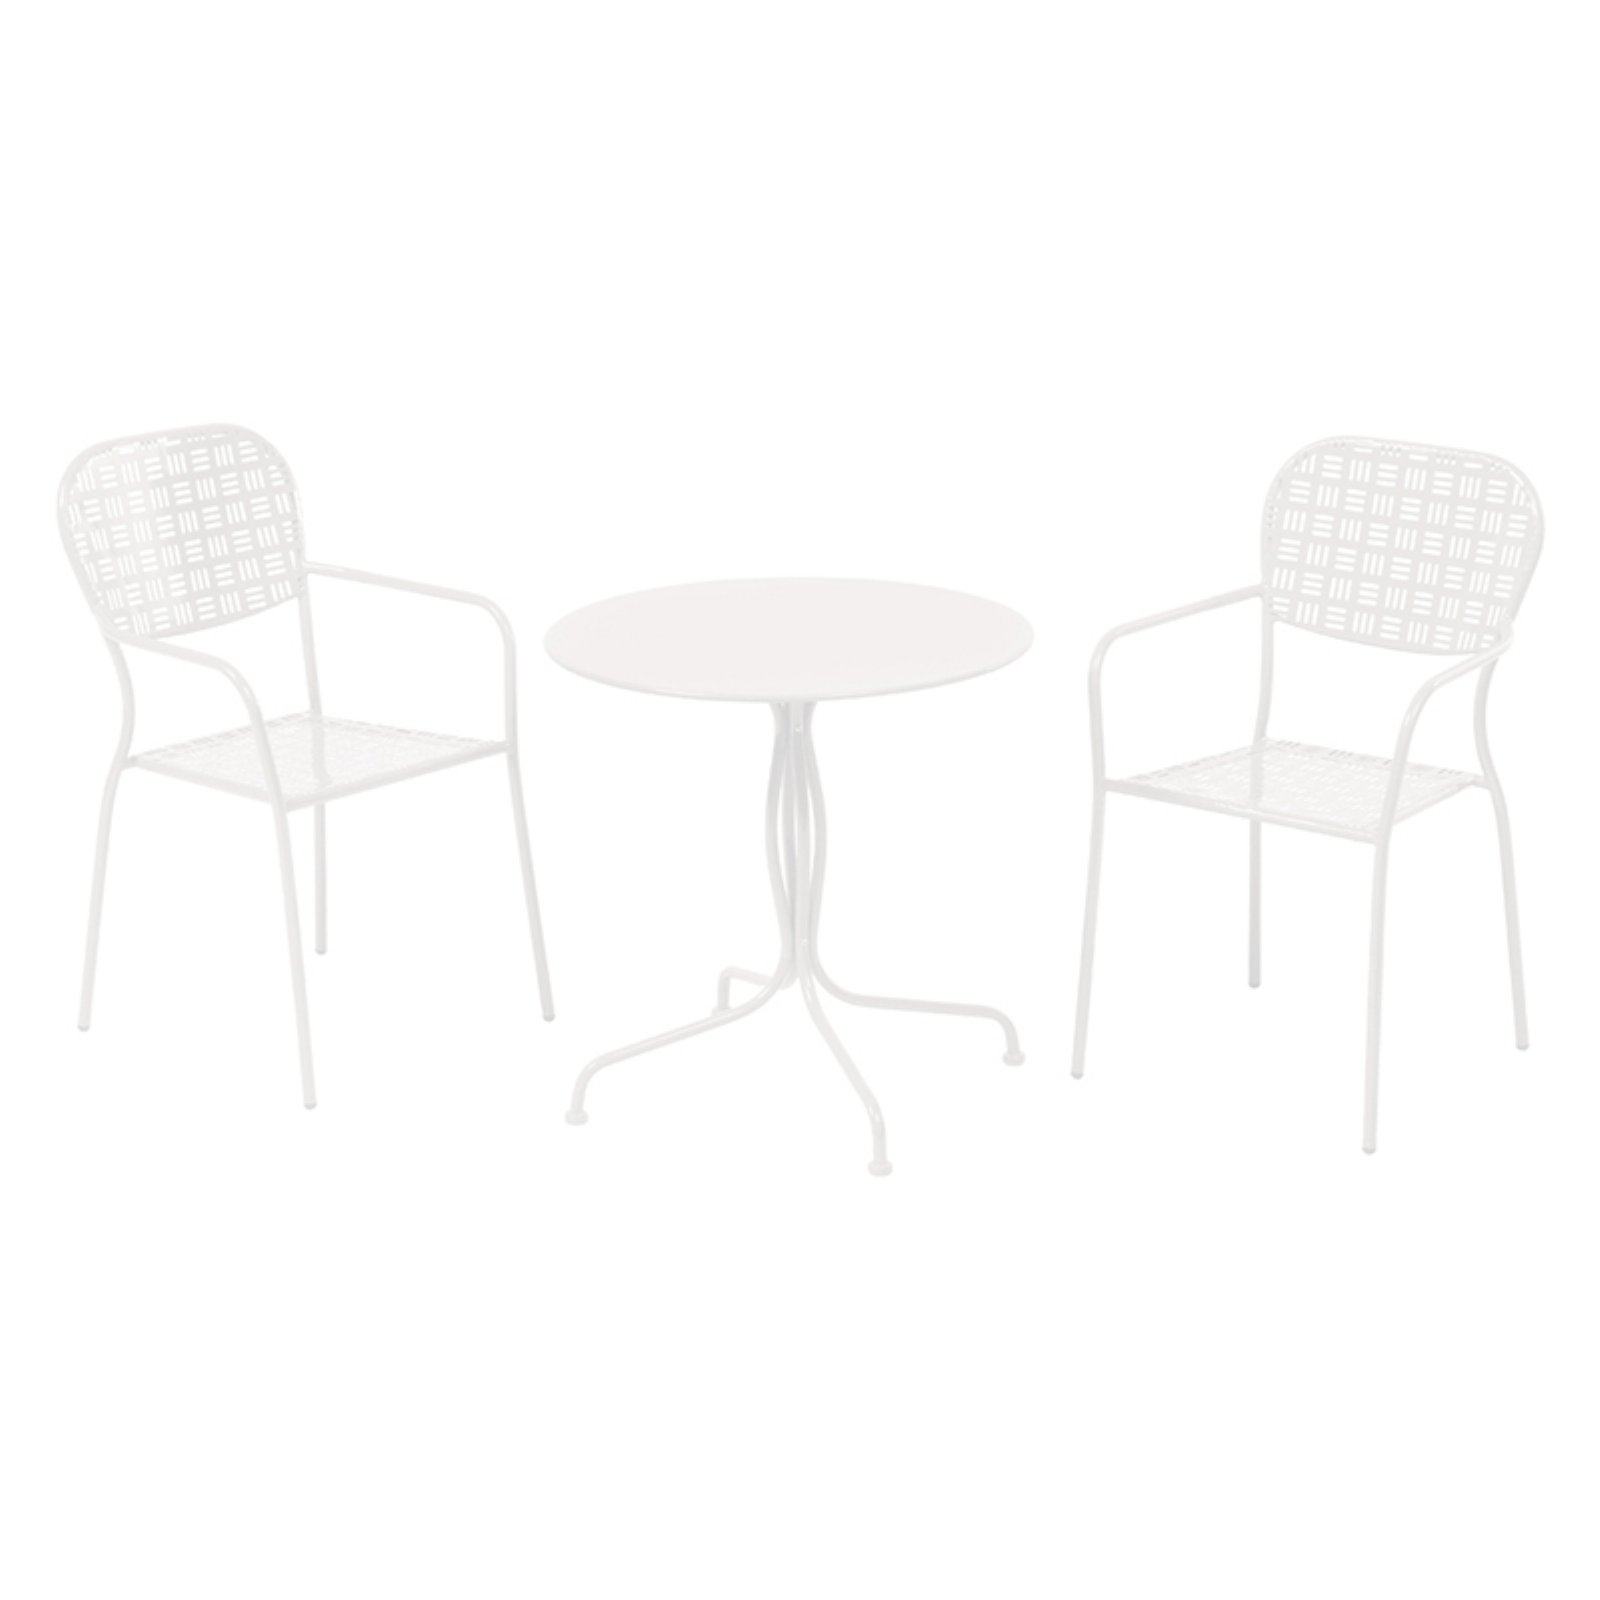 Alfresco Martini Wrought Iron 3 Piece 28 in. Round Patio Bistro Set, Red